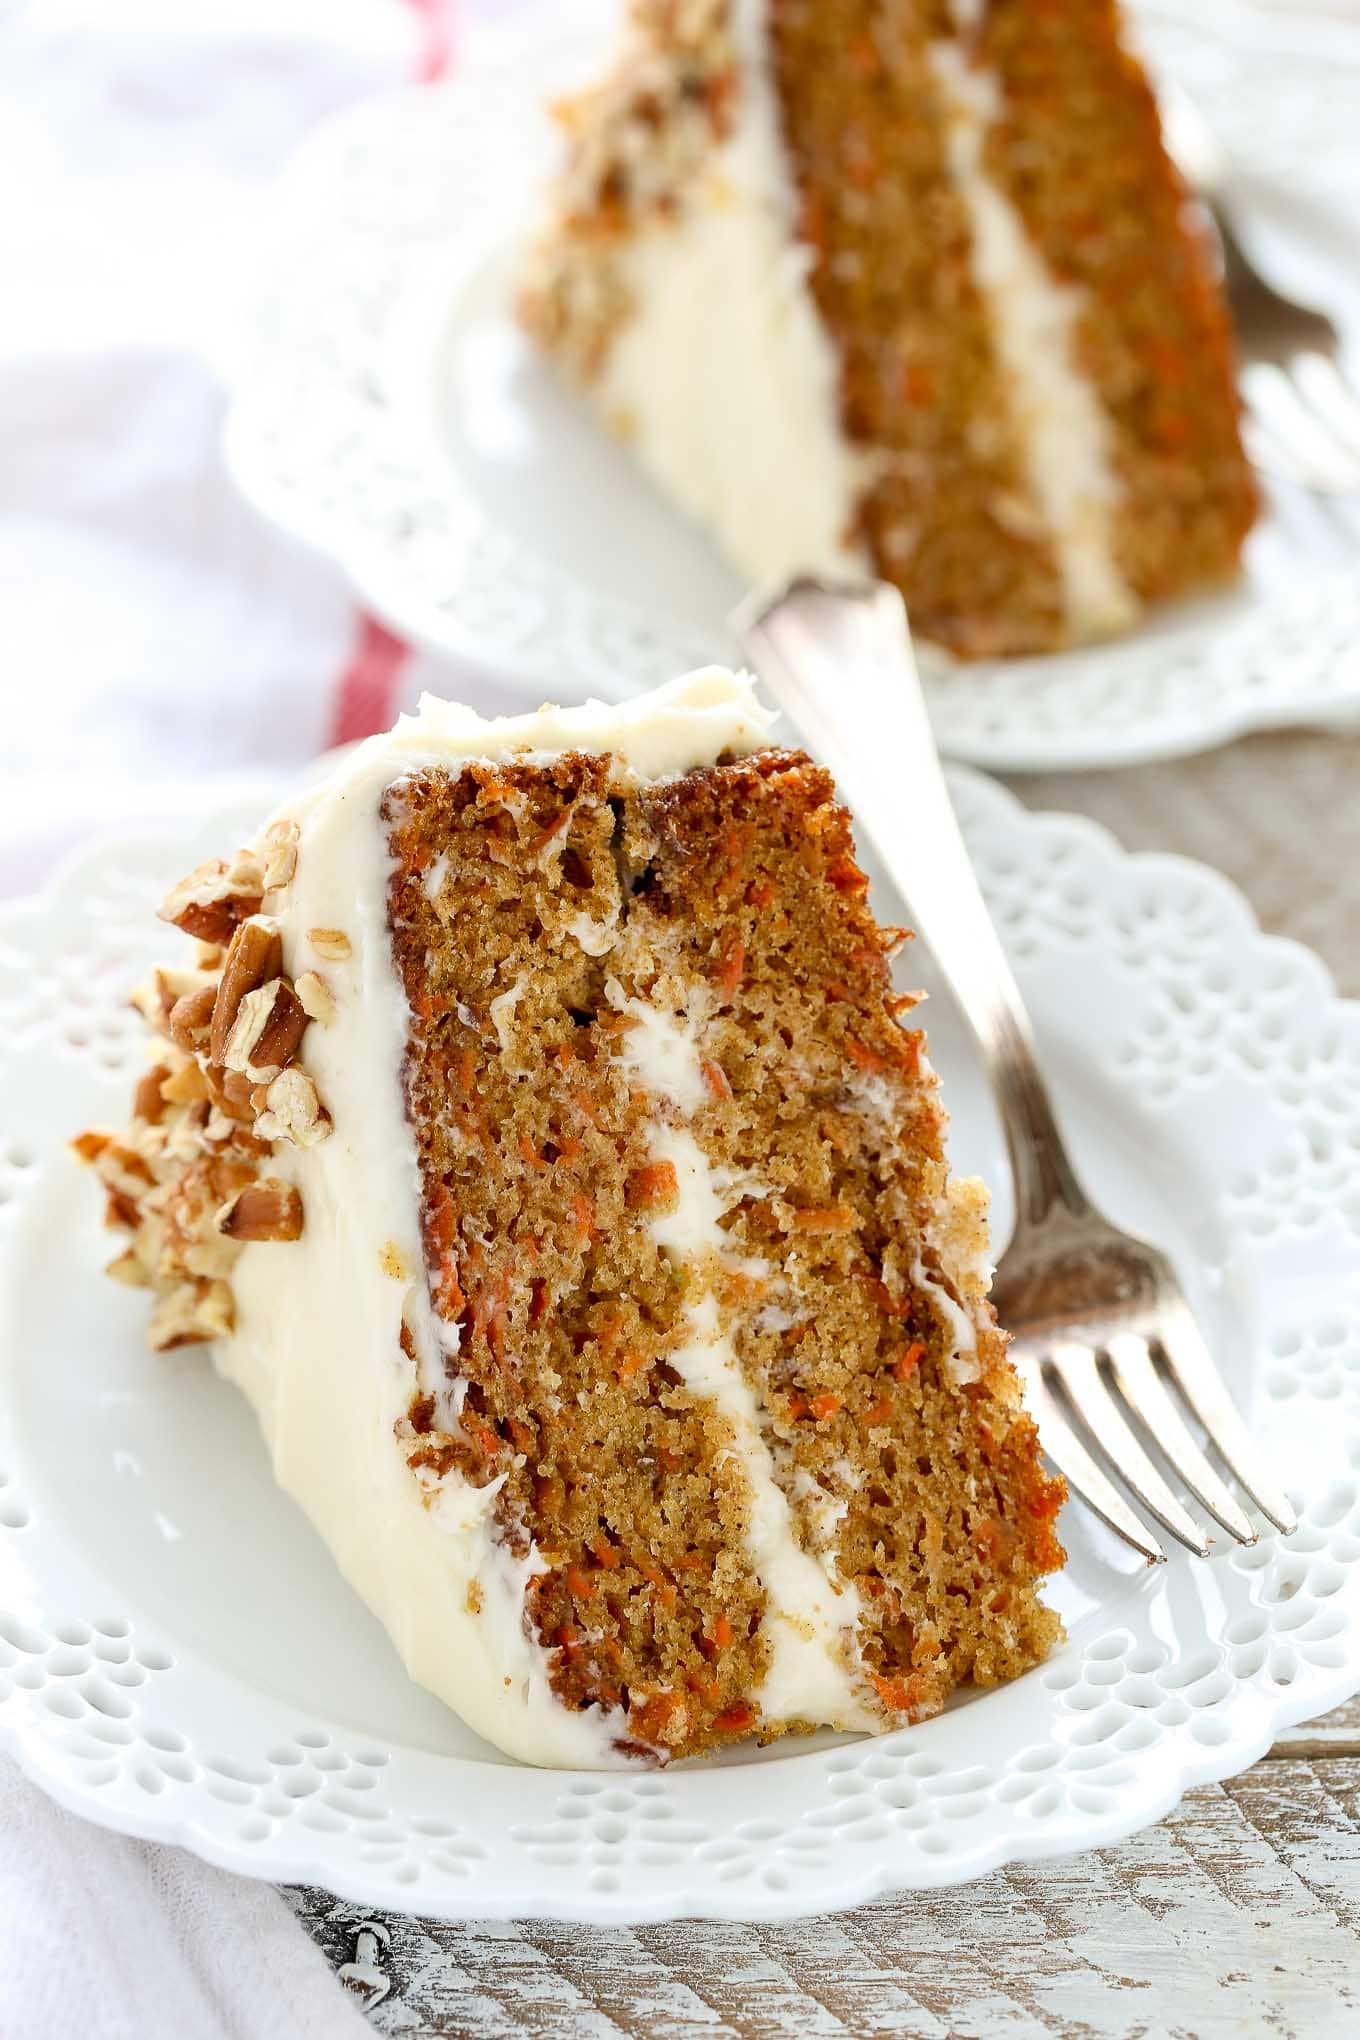 Best Peanut Butter Cake Recipe World